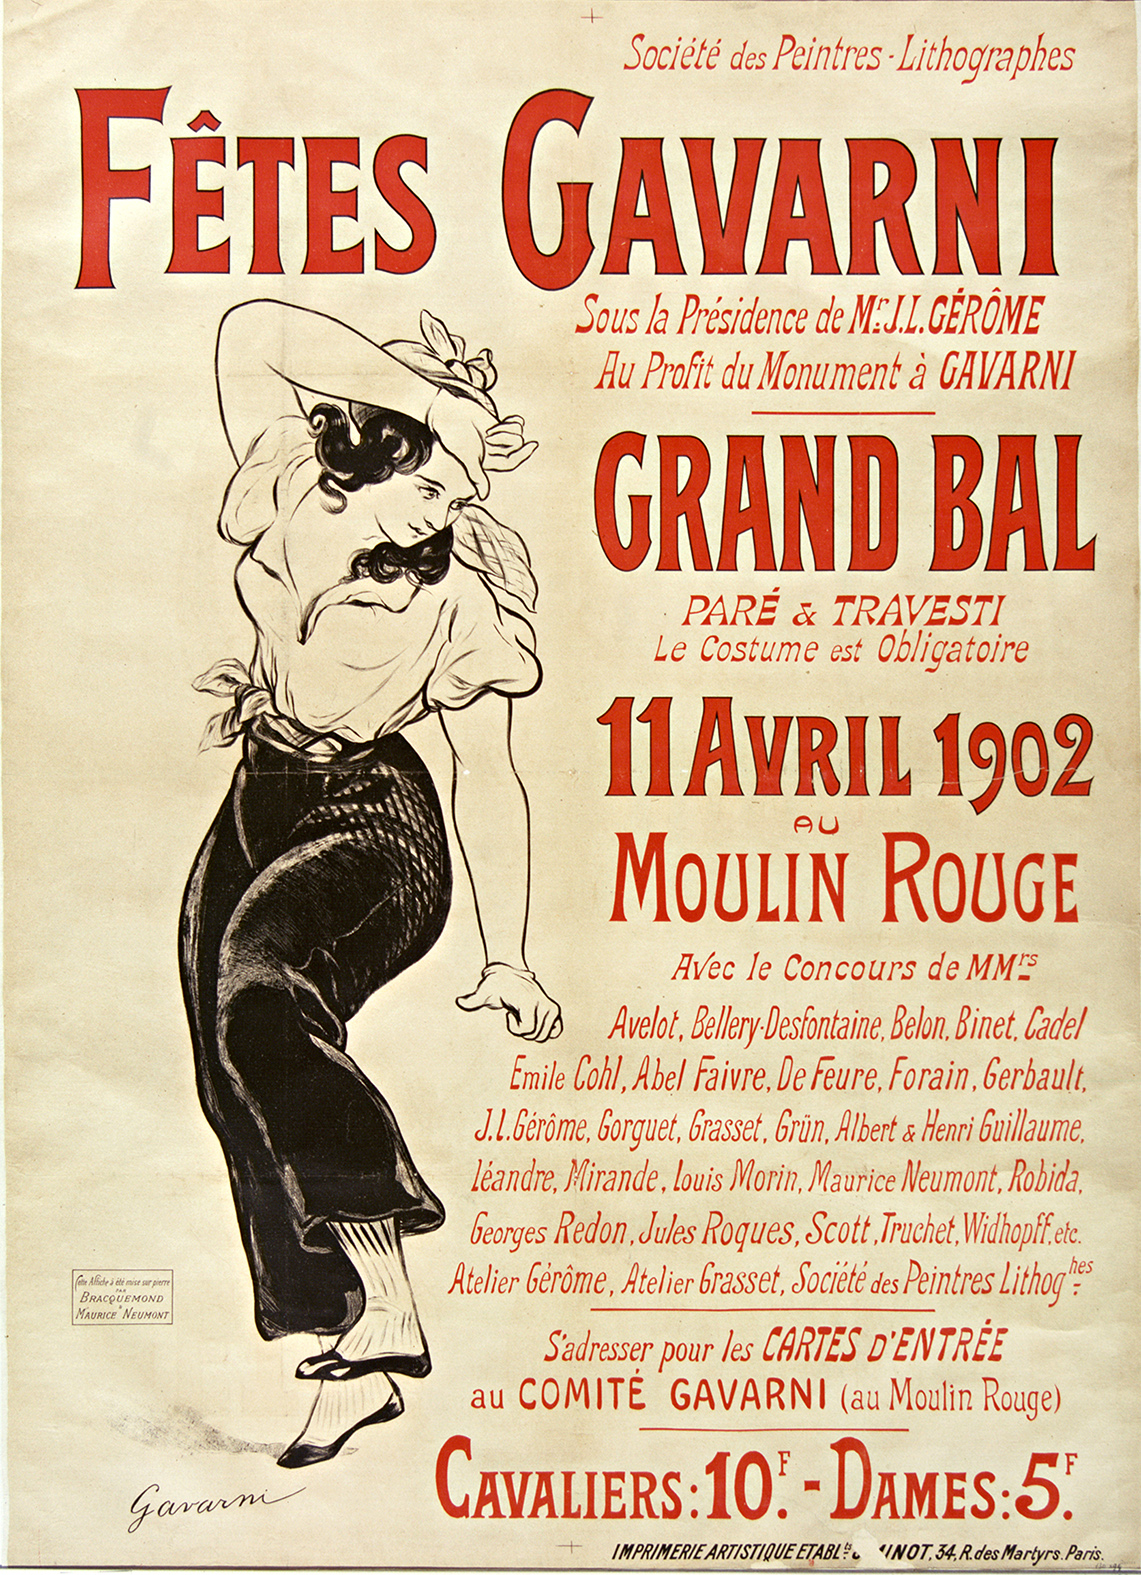 Fêtes Cavarni. Grand bal 11 avril 1902. Moulin rouge :  ark:/12148/btv1b9014039p